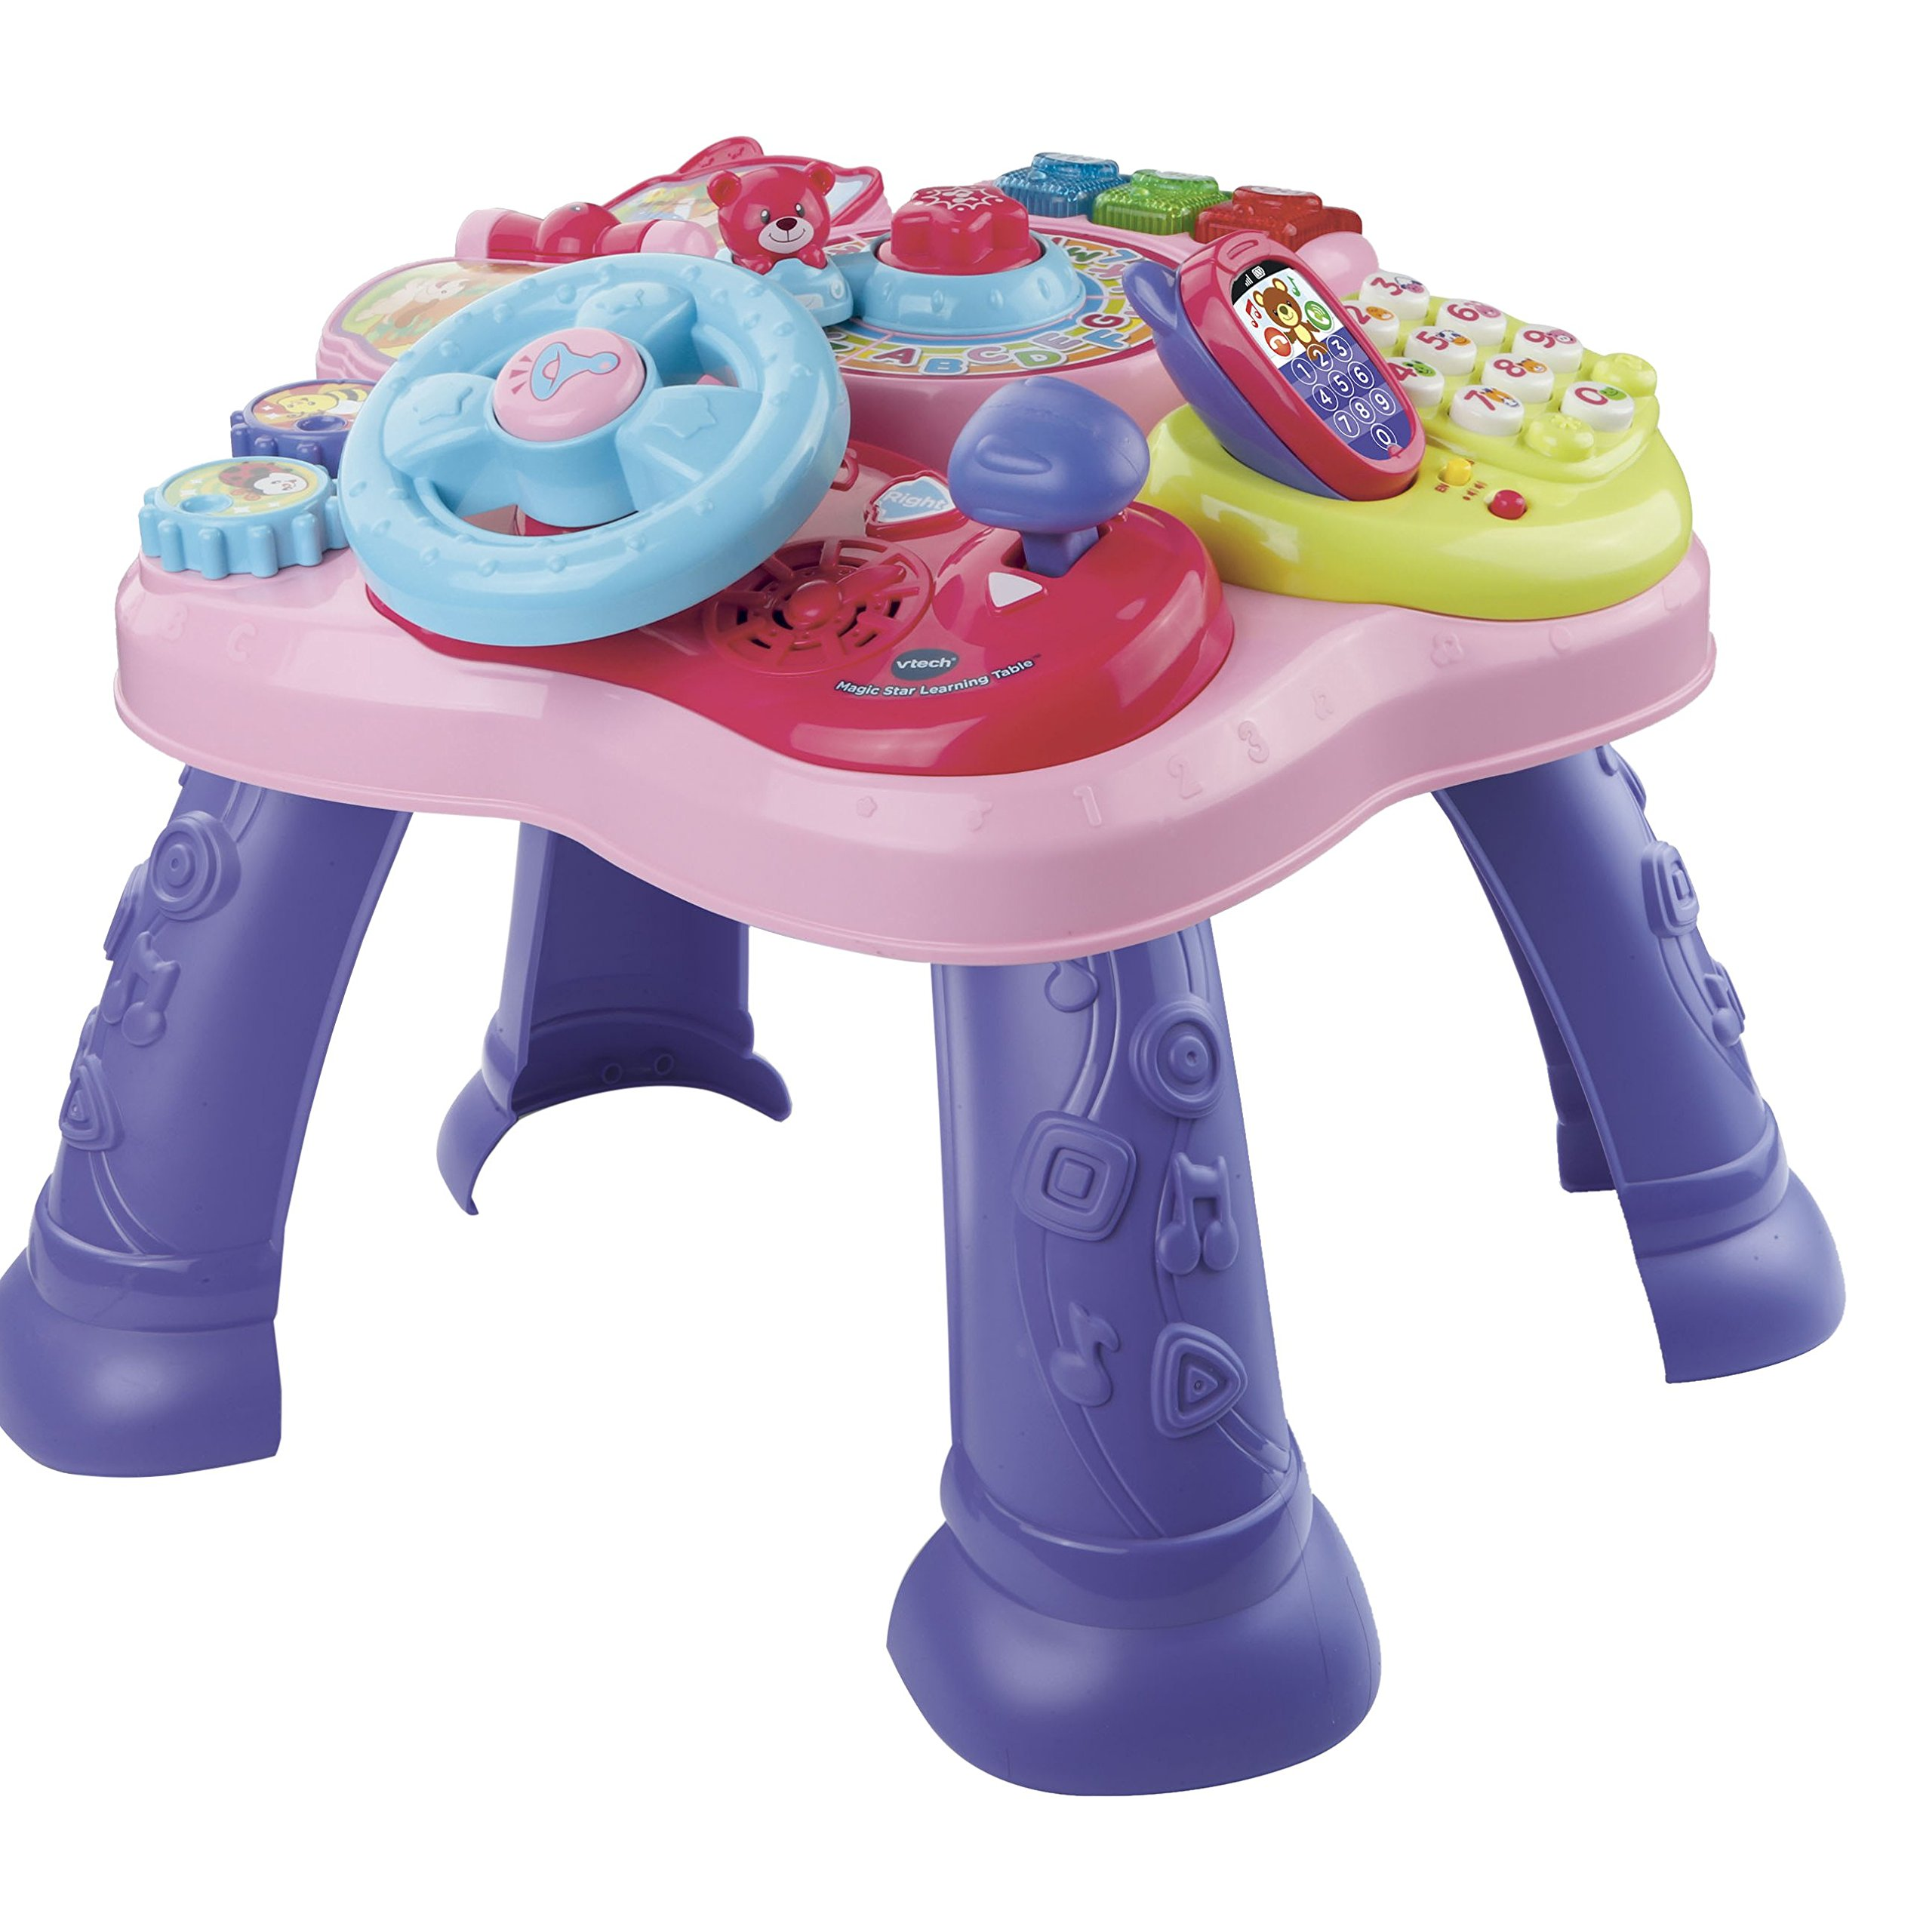 VTech Magic Star Learning Table, Pink (Frustration Free Packaging) by VTech (Image #1)